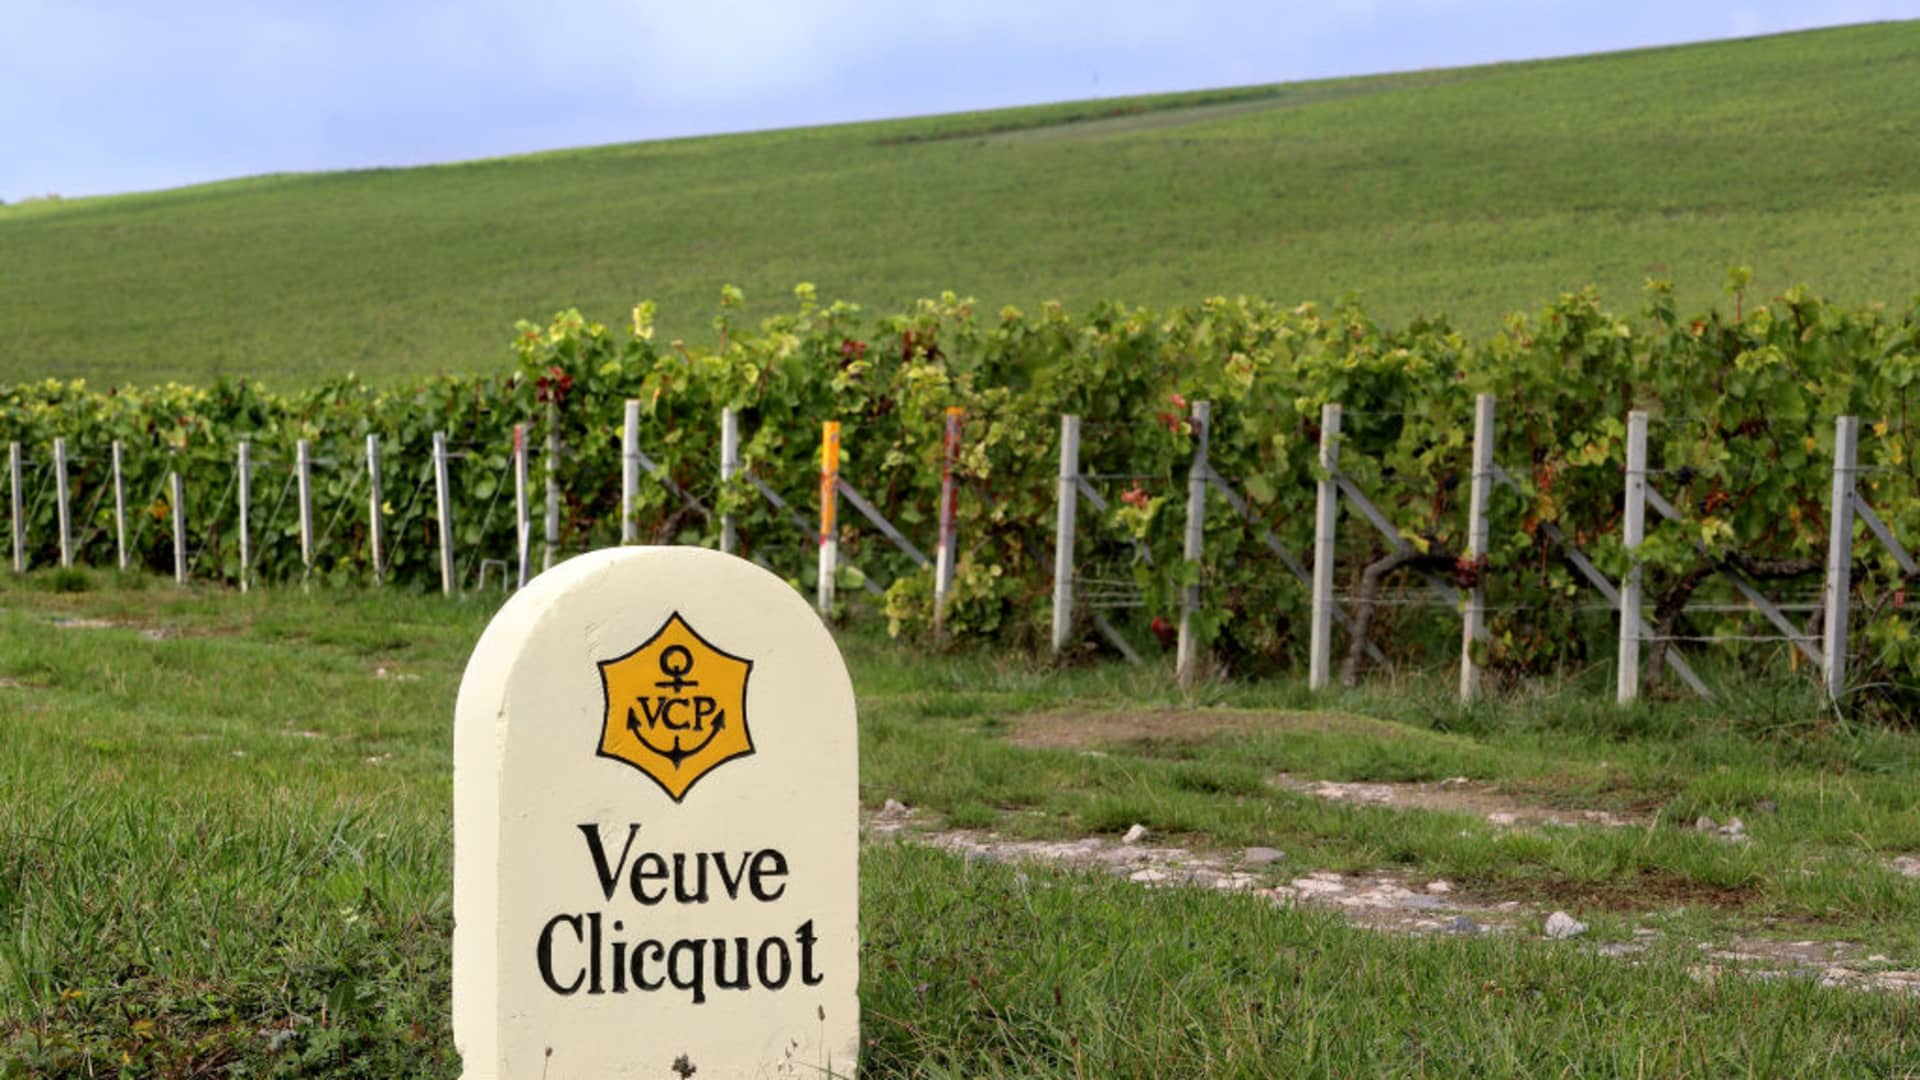 A stone marker indicates the vineyards belong to Champagne Veuve Clicquot in the village of Ay in the Vallée de la Marne champagne production region of eastern France.